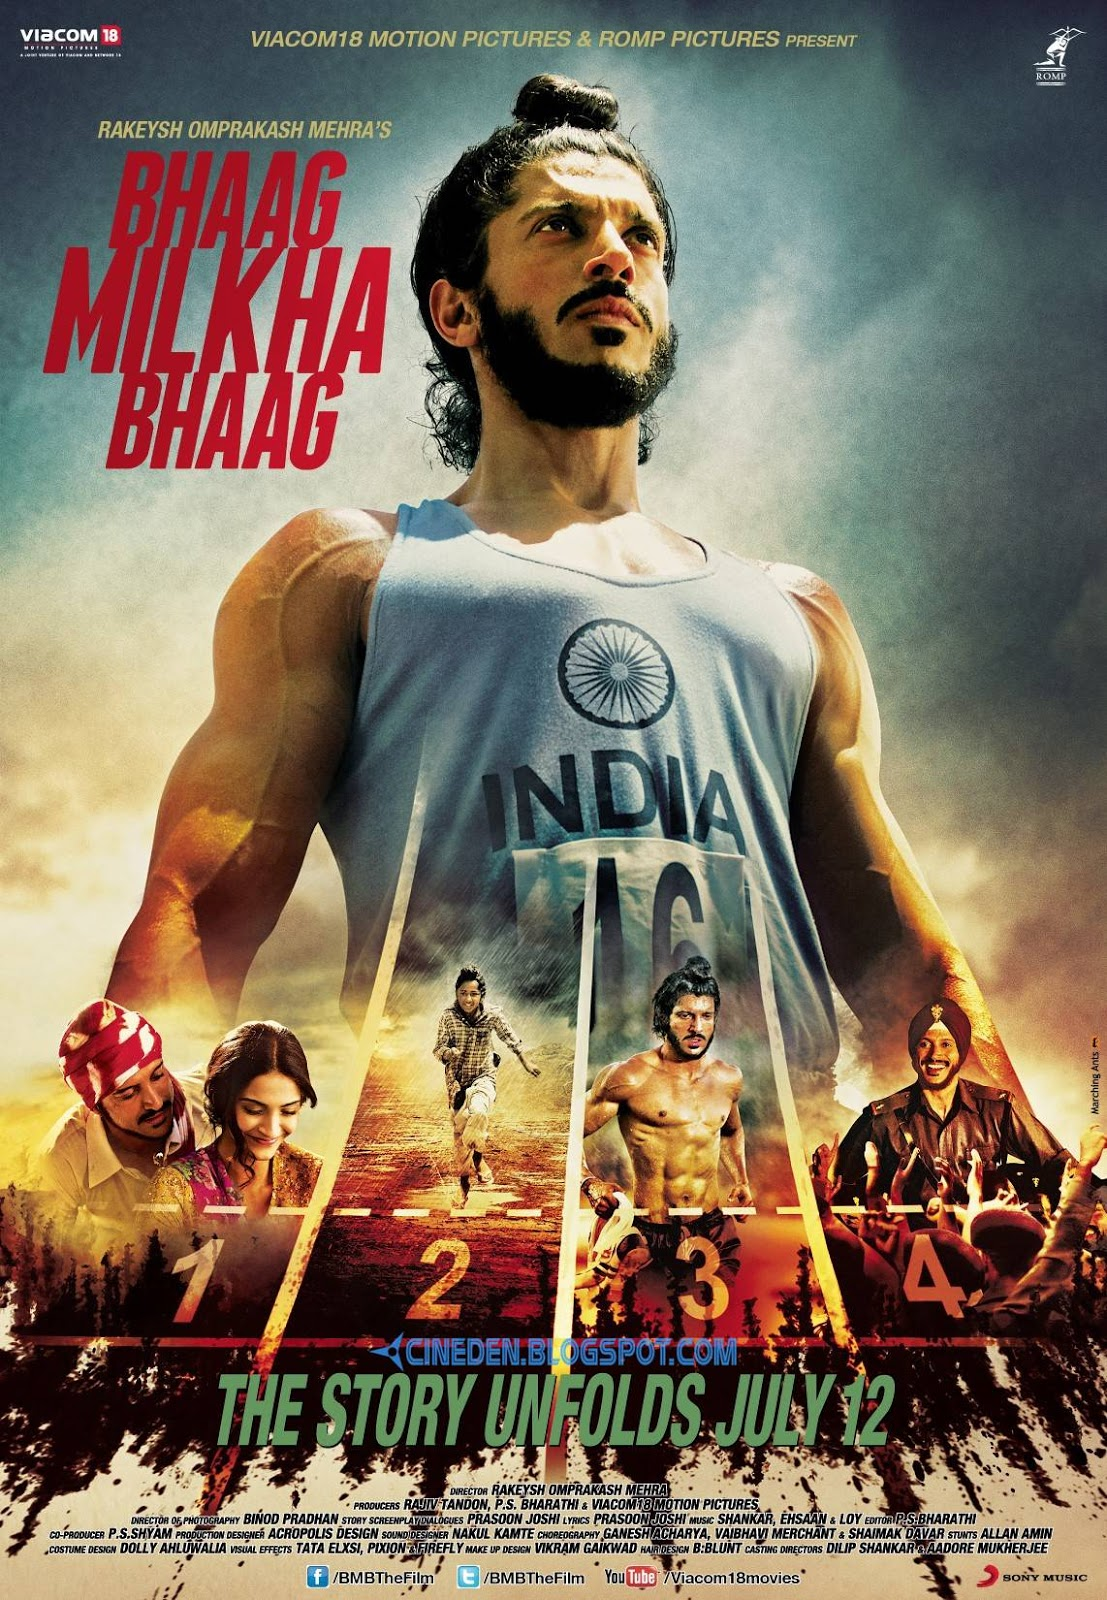 Bhaag Milkha Bhaag (2013) - Hindi Movie Review - CineDen